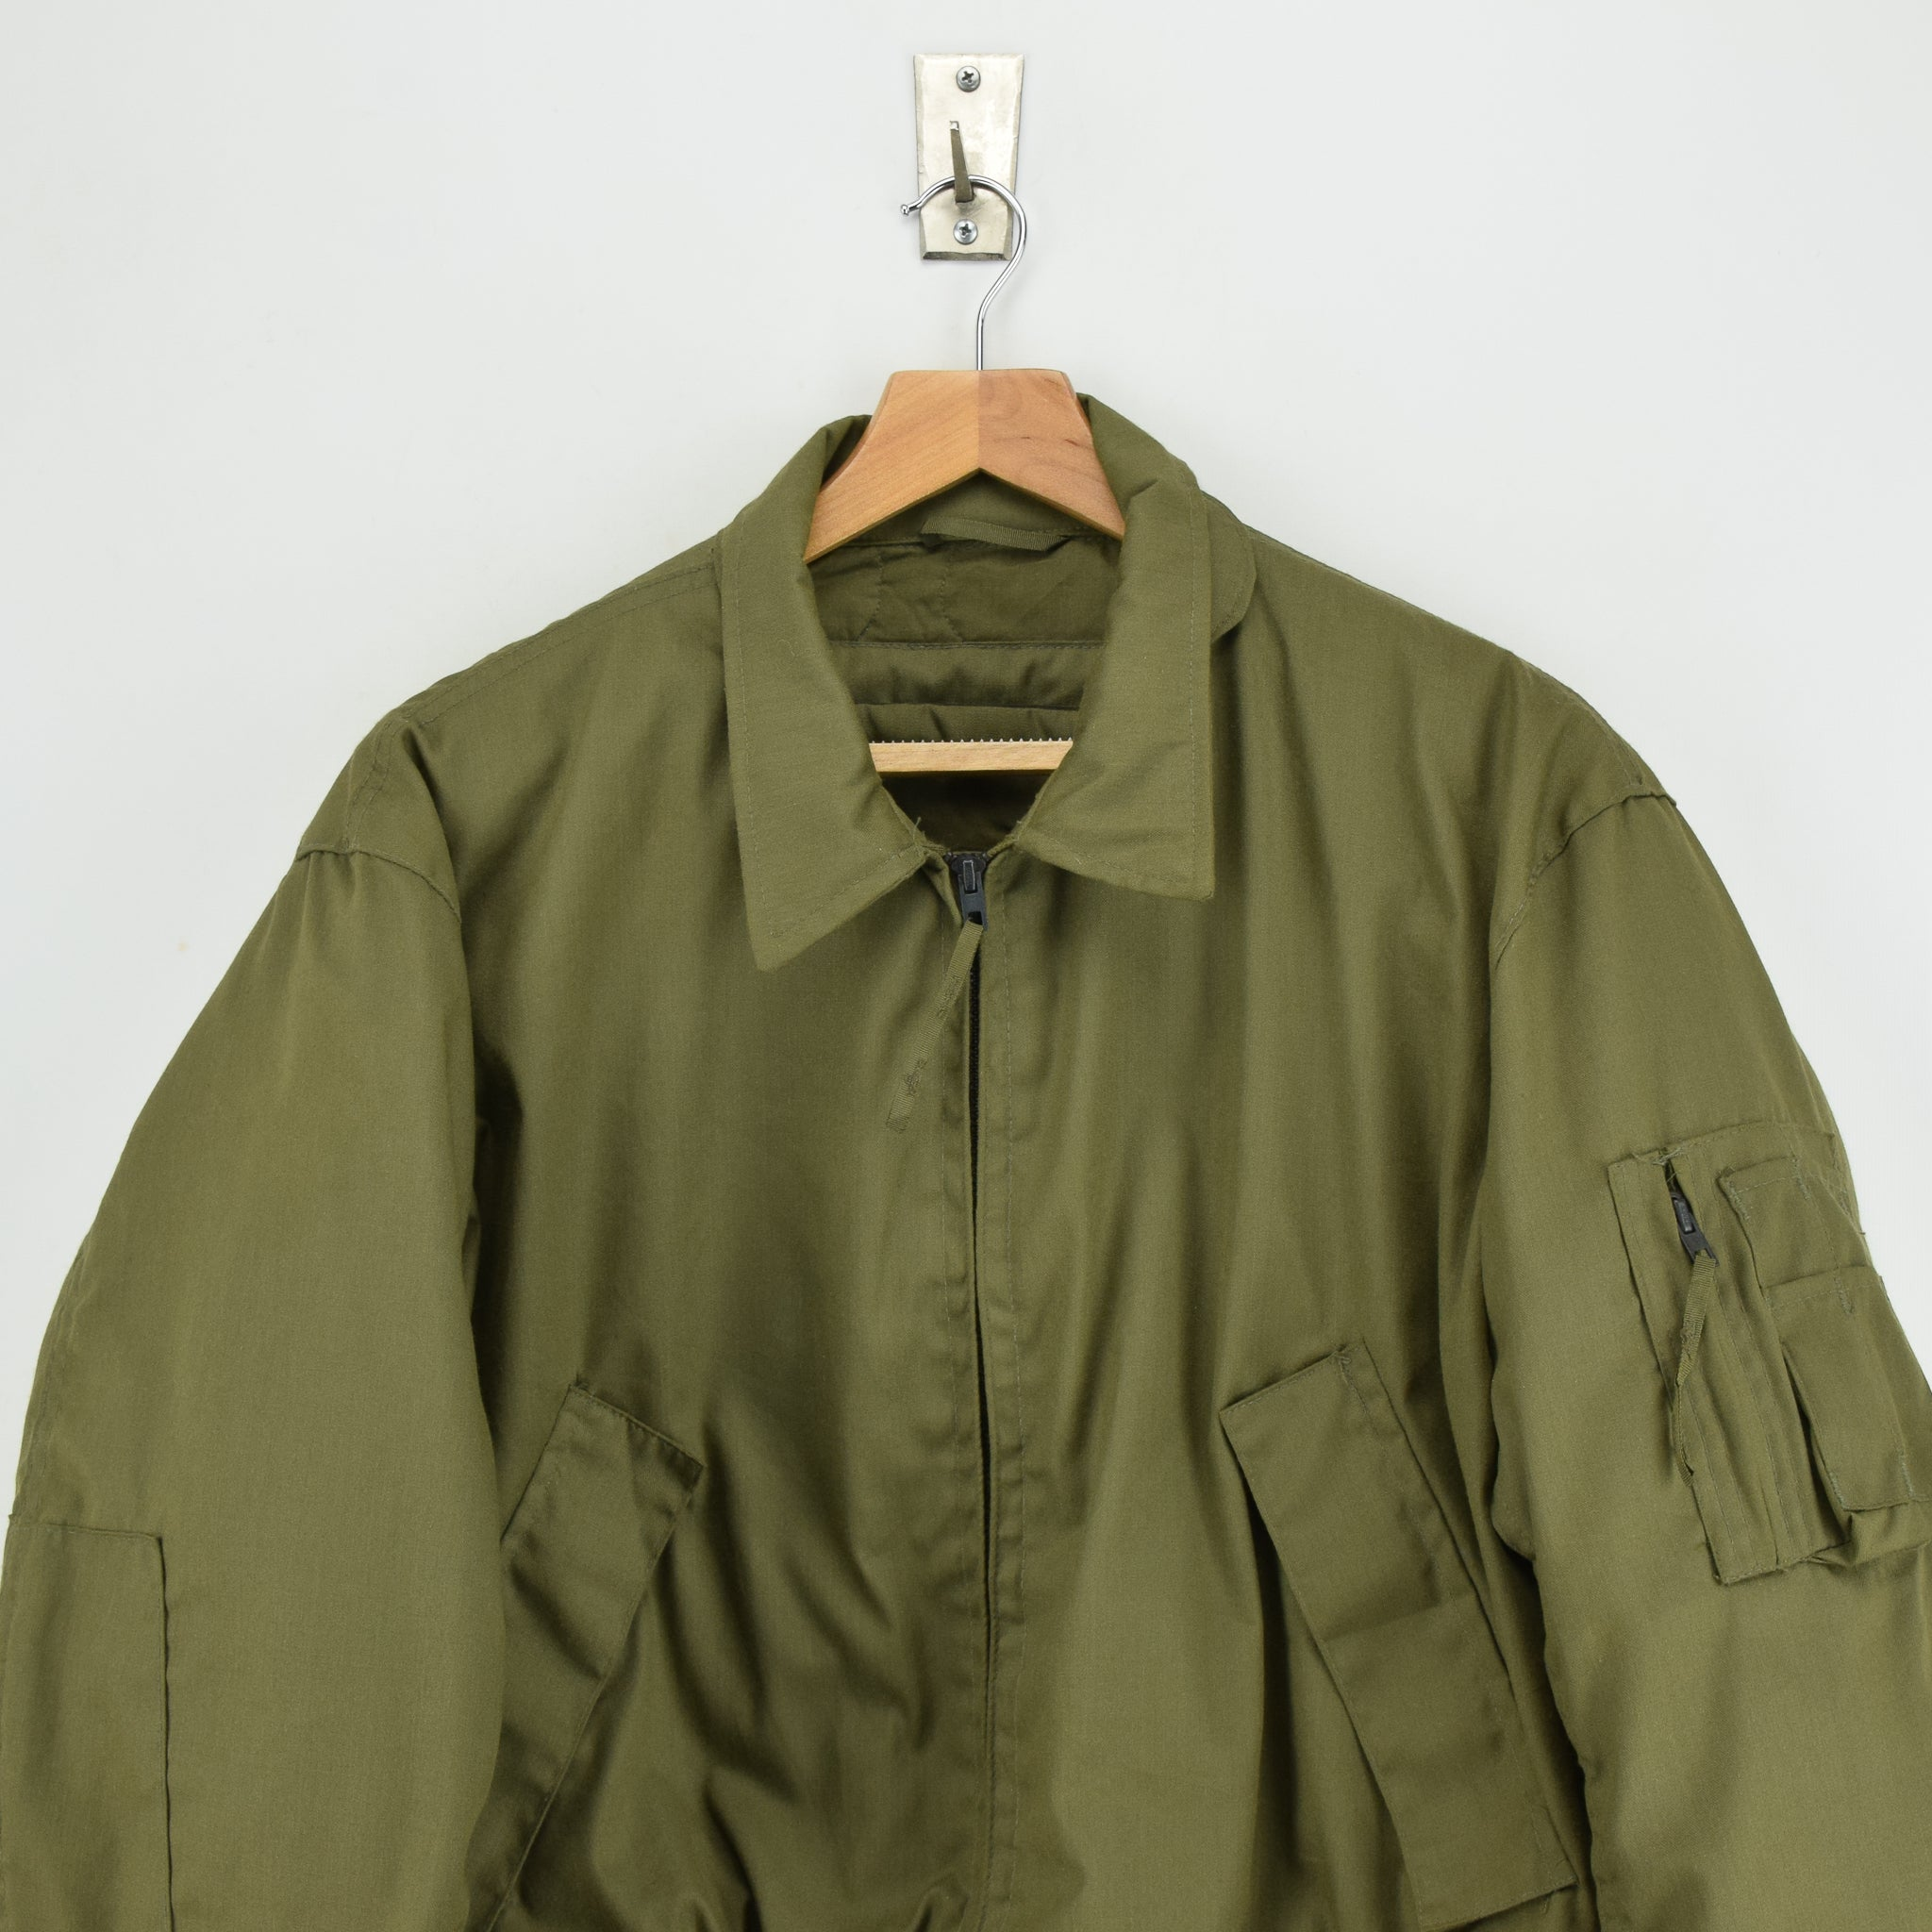 062f65f952 ... Vintage 90s US Army Cold Weather High Temperature Resistant Tanker  Jacket L chest ...